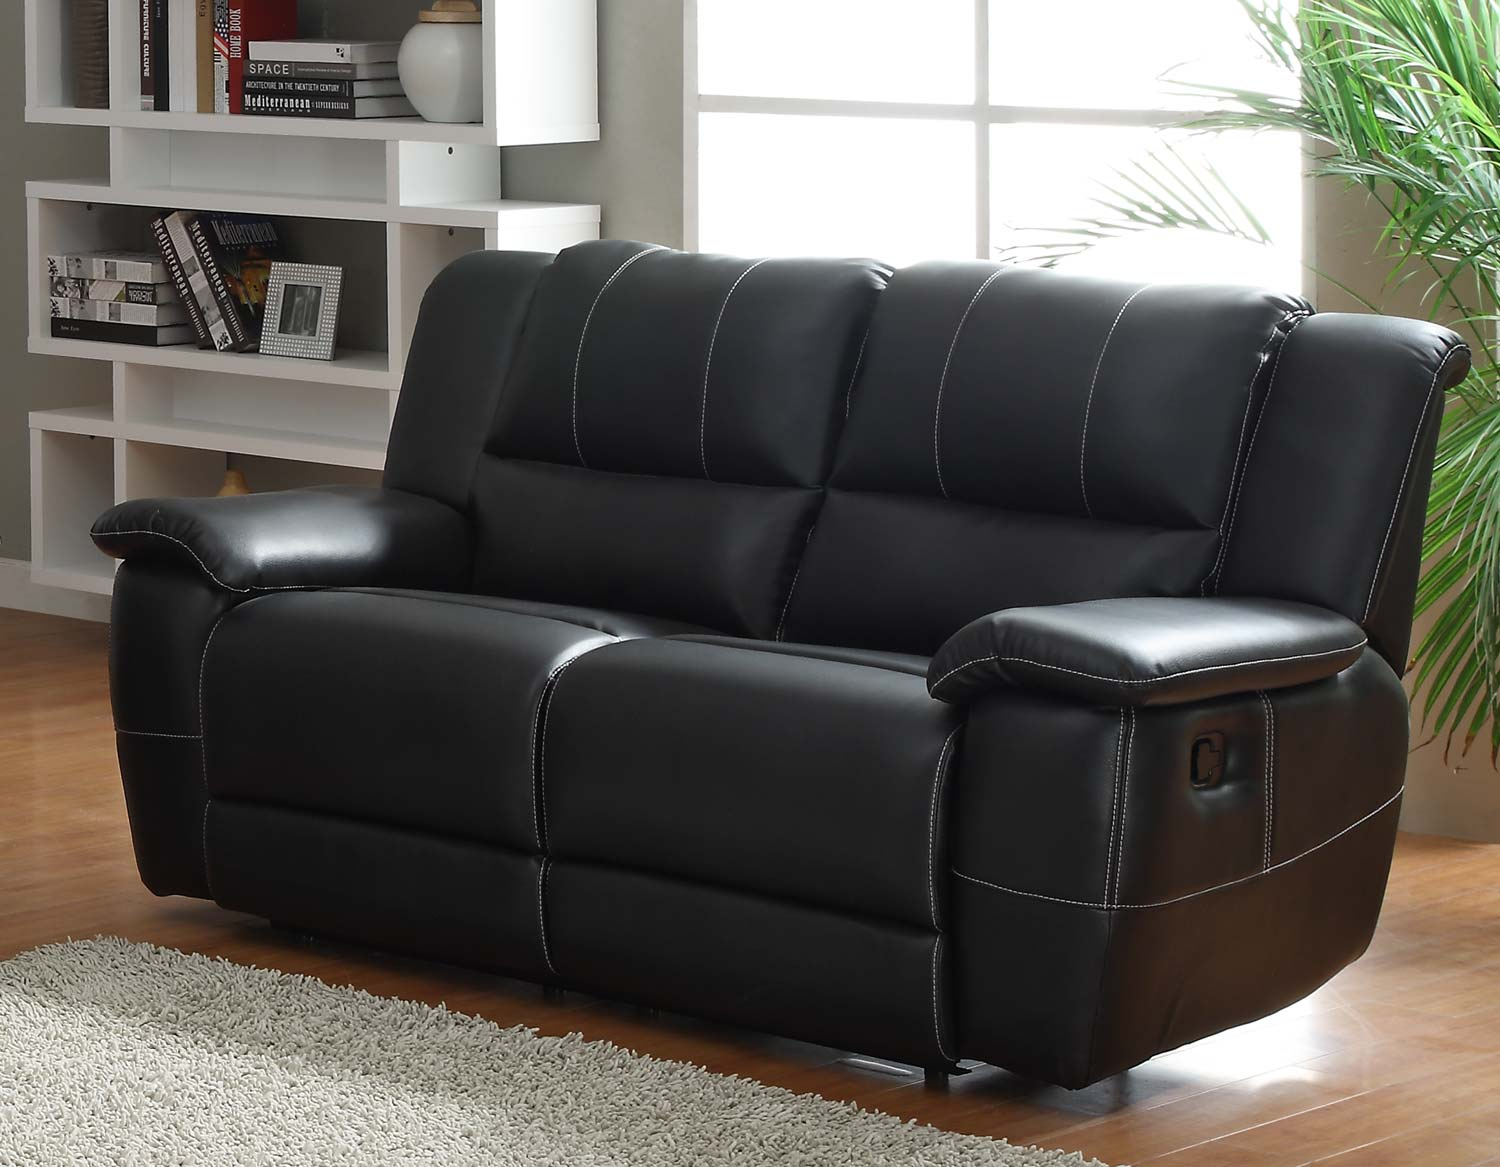 Homelegance cantrell reclining sofa set black bonded leather match u9778blk 3 Leather reclining loveseat